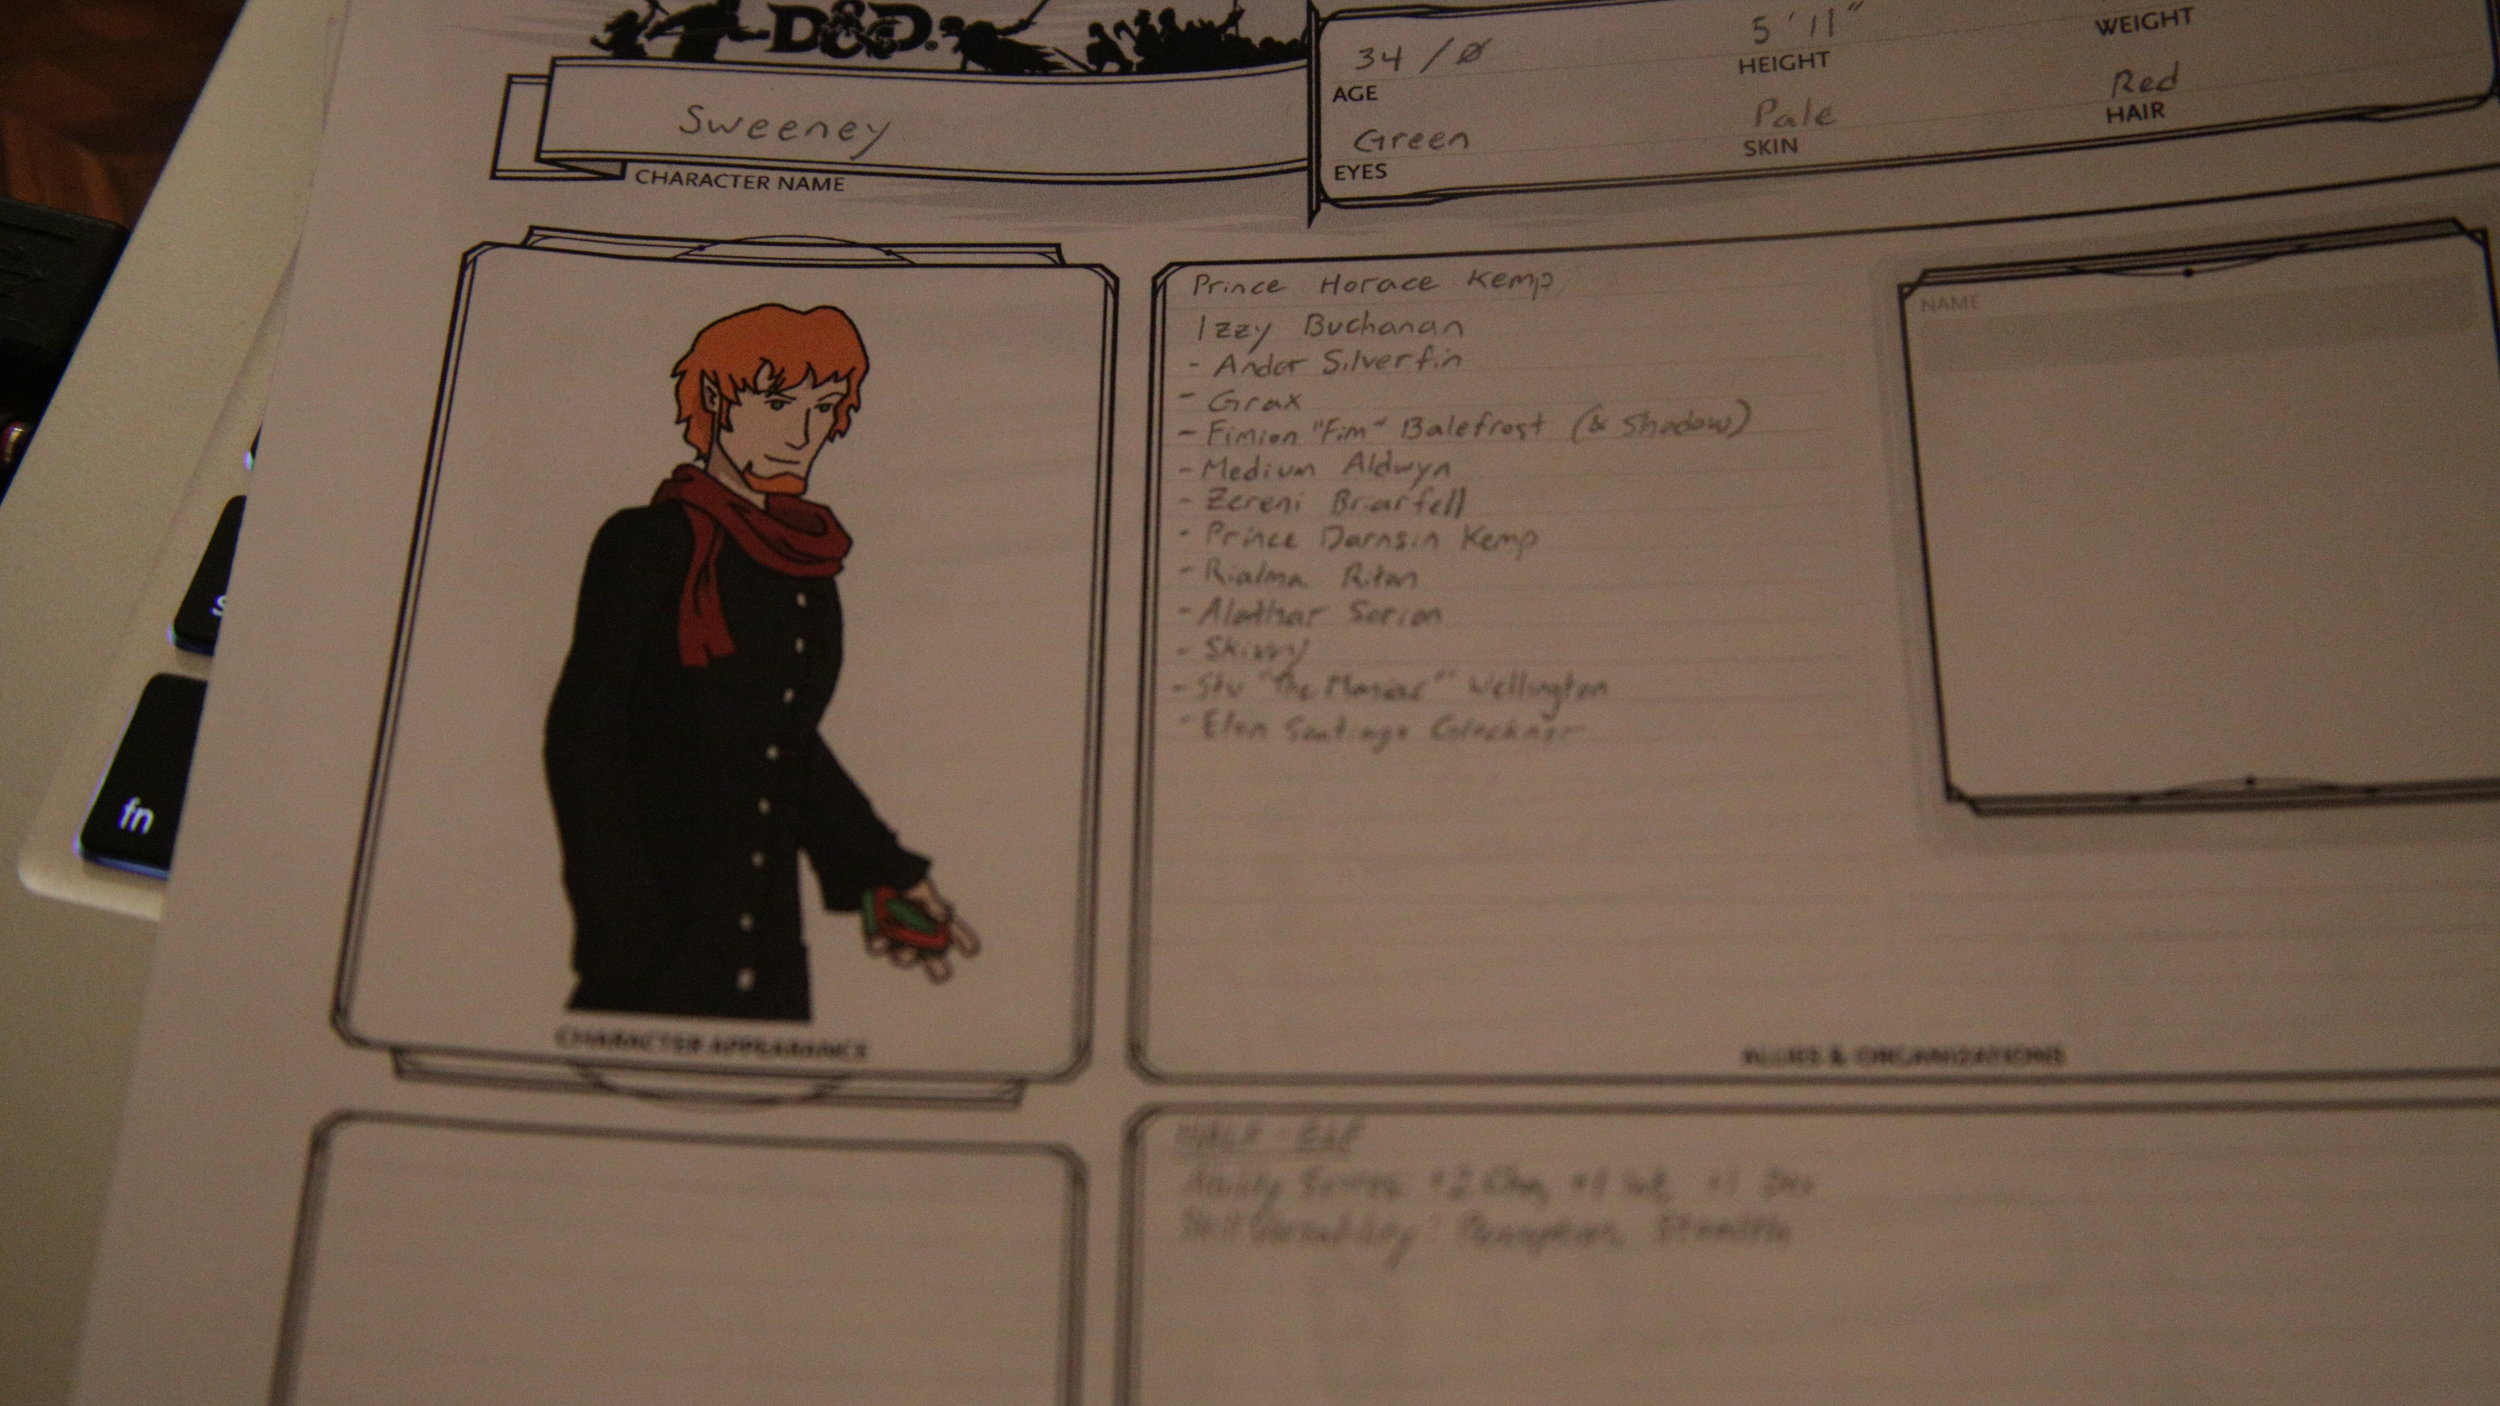 Copy of Sweeney's character sheet (from Season 14)